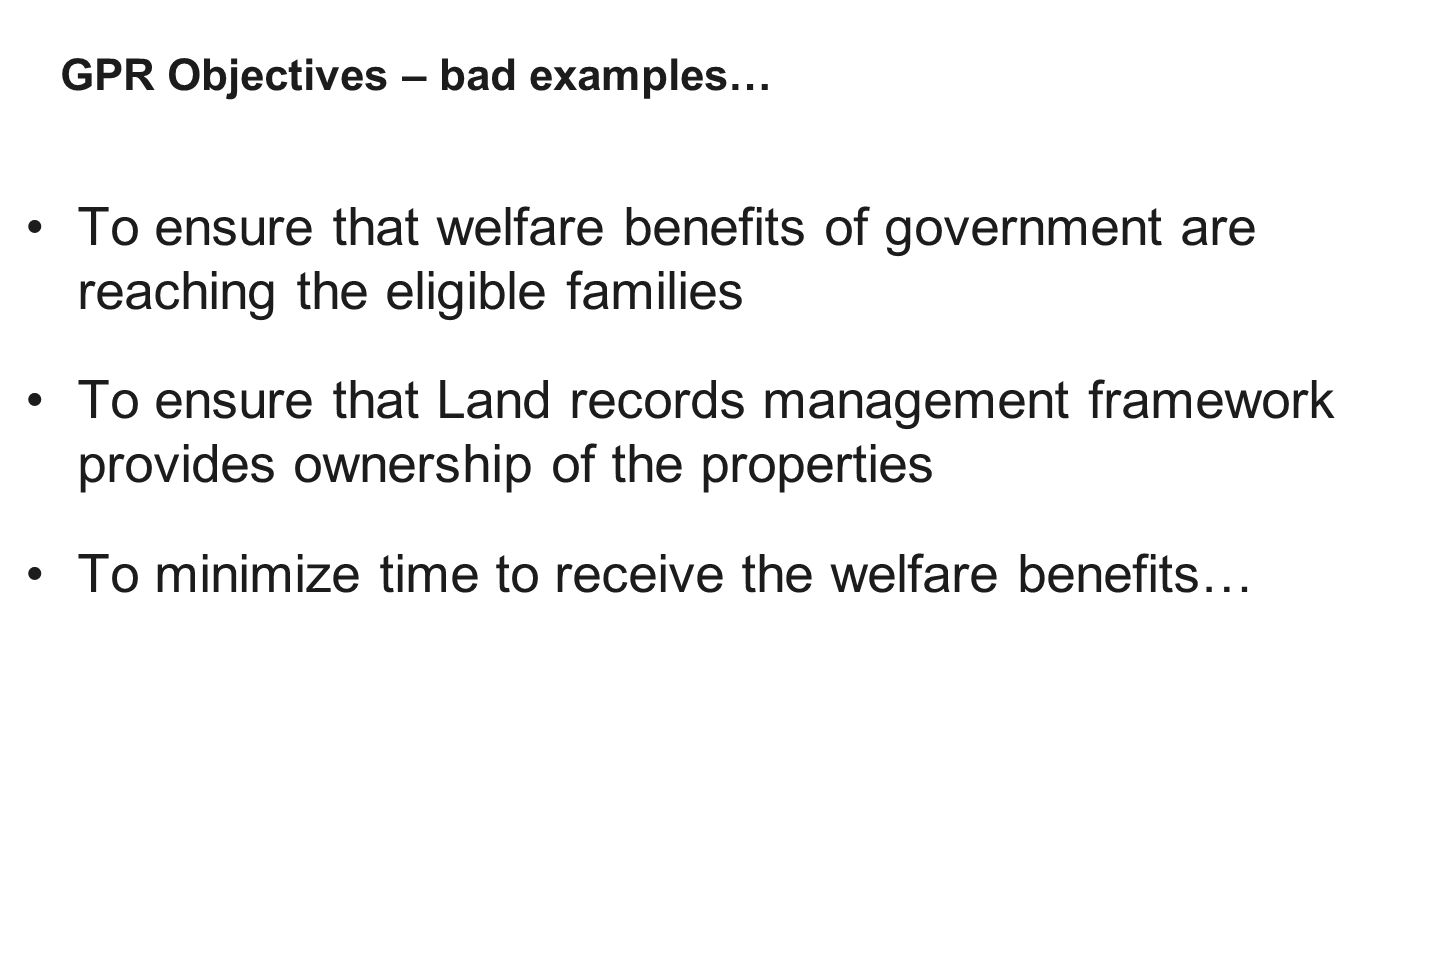 To ensure that welfare benefits of government are reaching the eligible families To ensure that Land records management framework provides ownership of the properties To minimize time to receive the welfare benefits… GPR Objectives – bad examples…